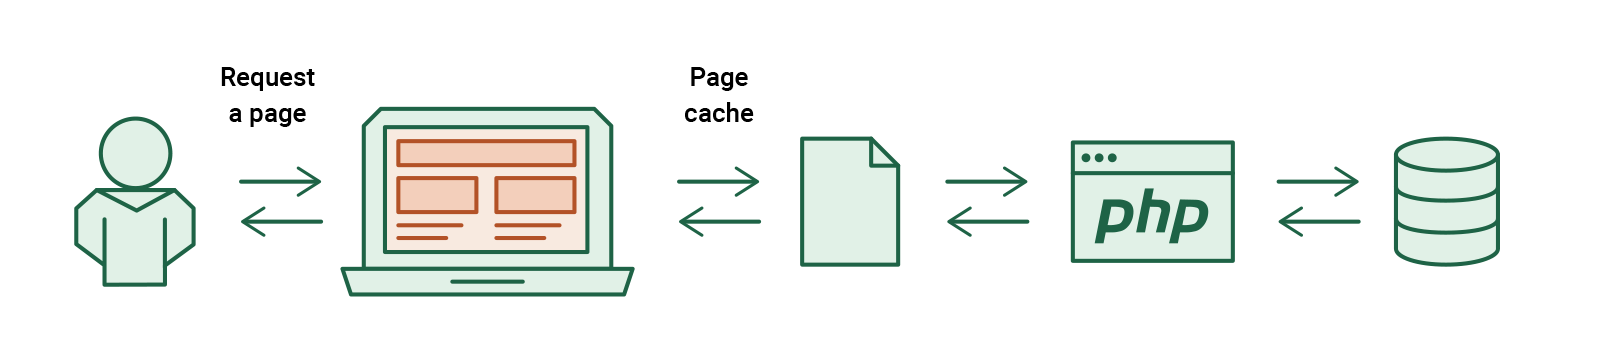 How hosting server speed affects SEO ranking of a website: Enable full-page caching